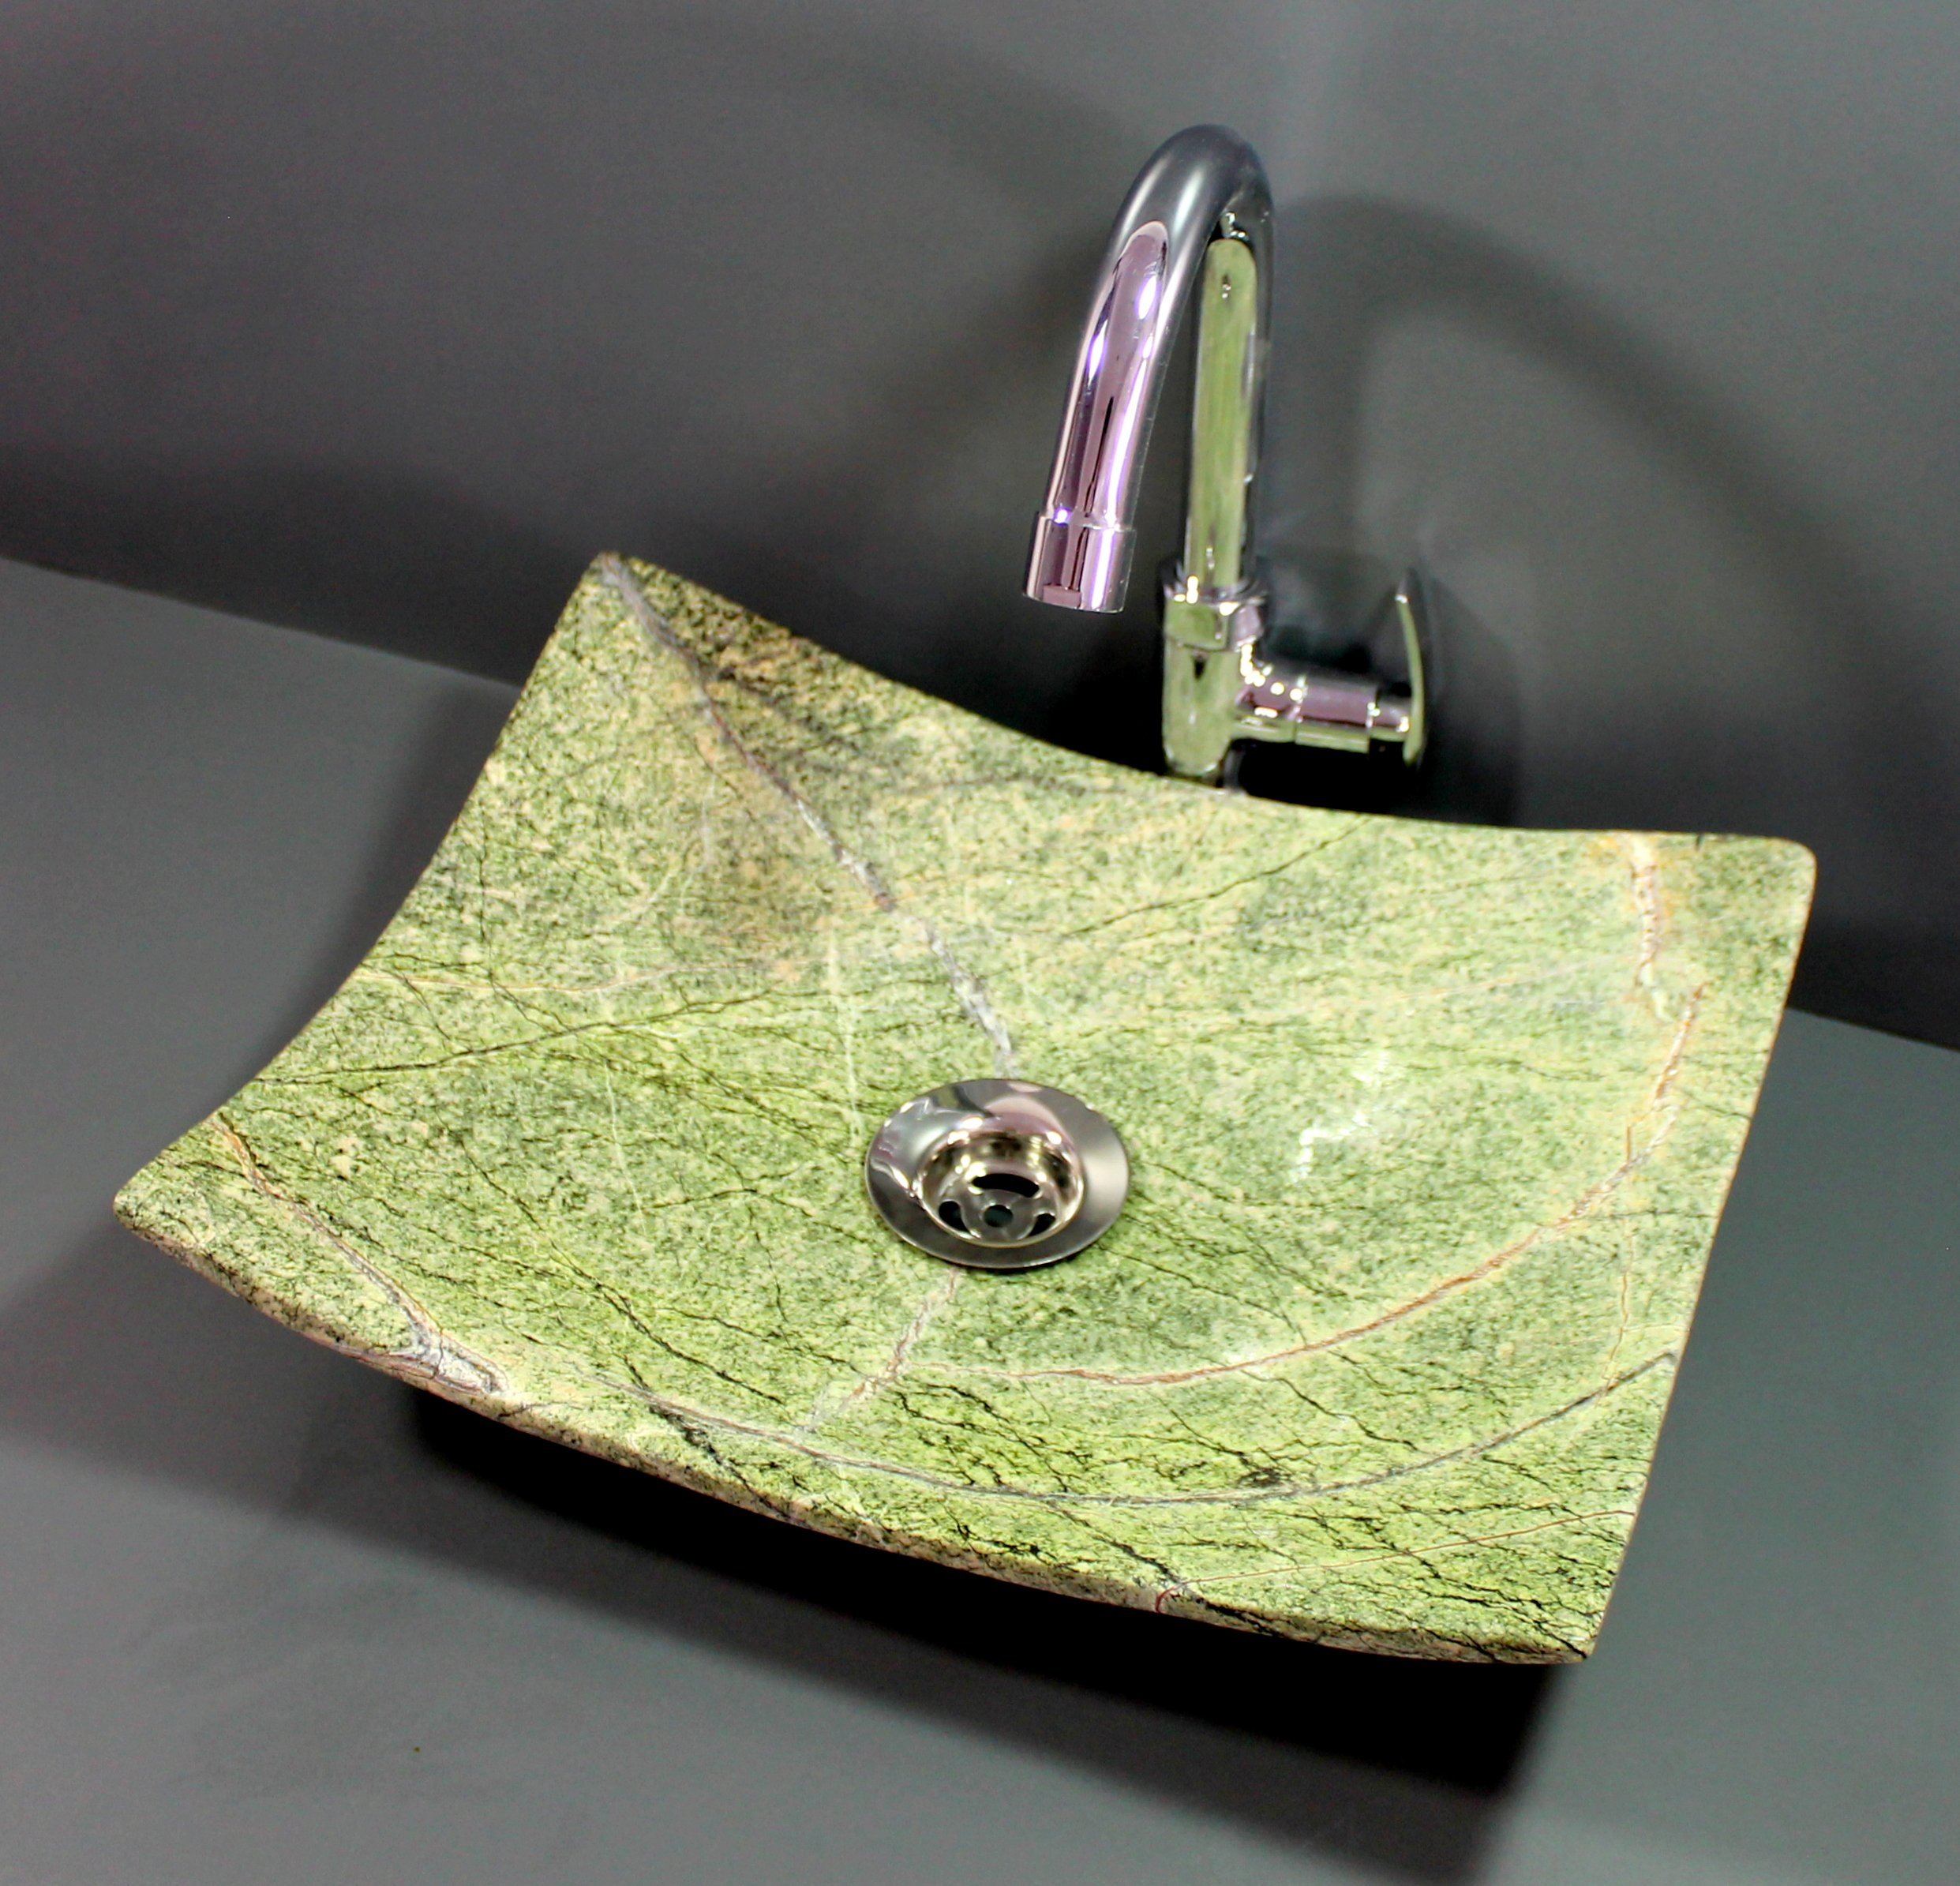 KLEO Luxury Natural Green Stone Desk Top Wash Basin/ Washbowl / Sink/ Washstand (11''x13'') by KLEO